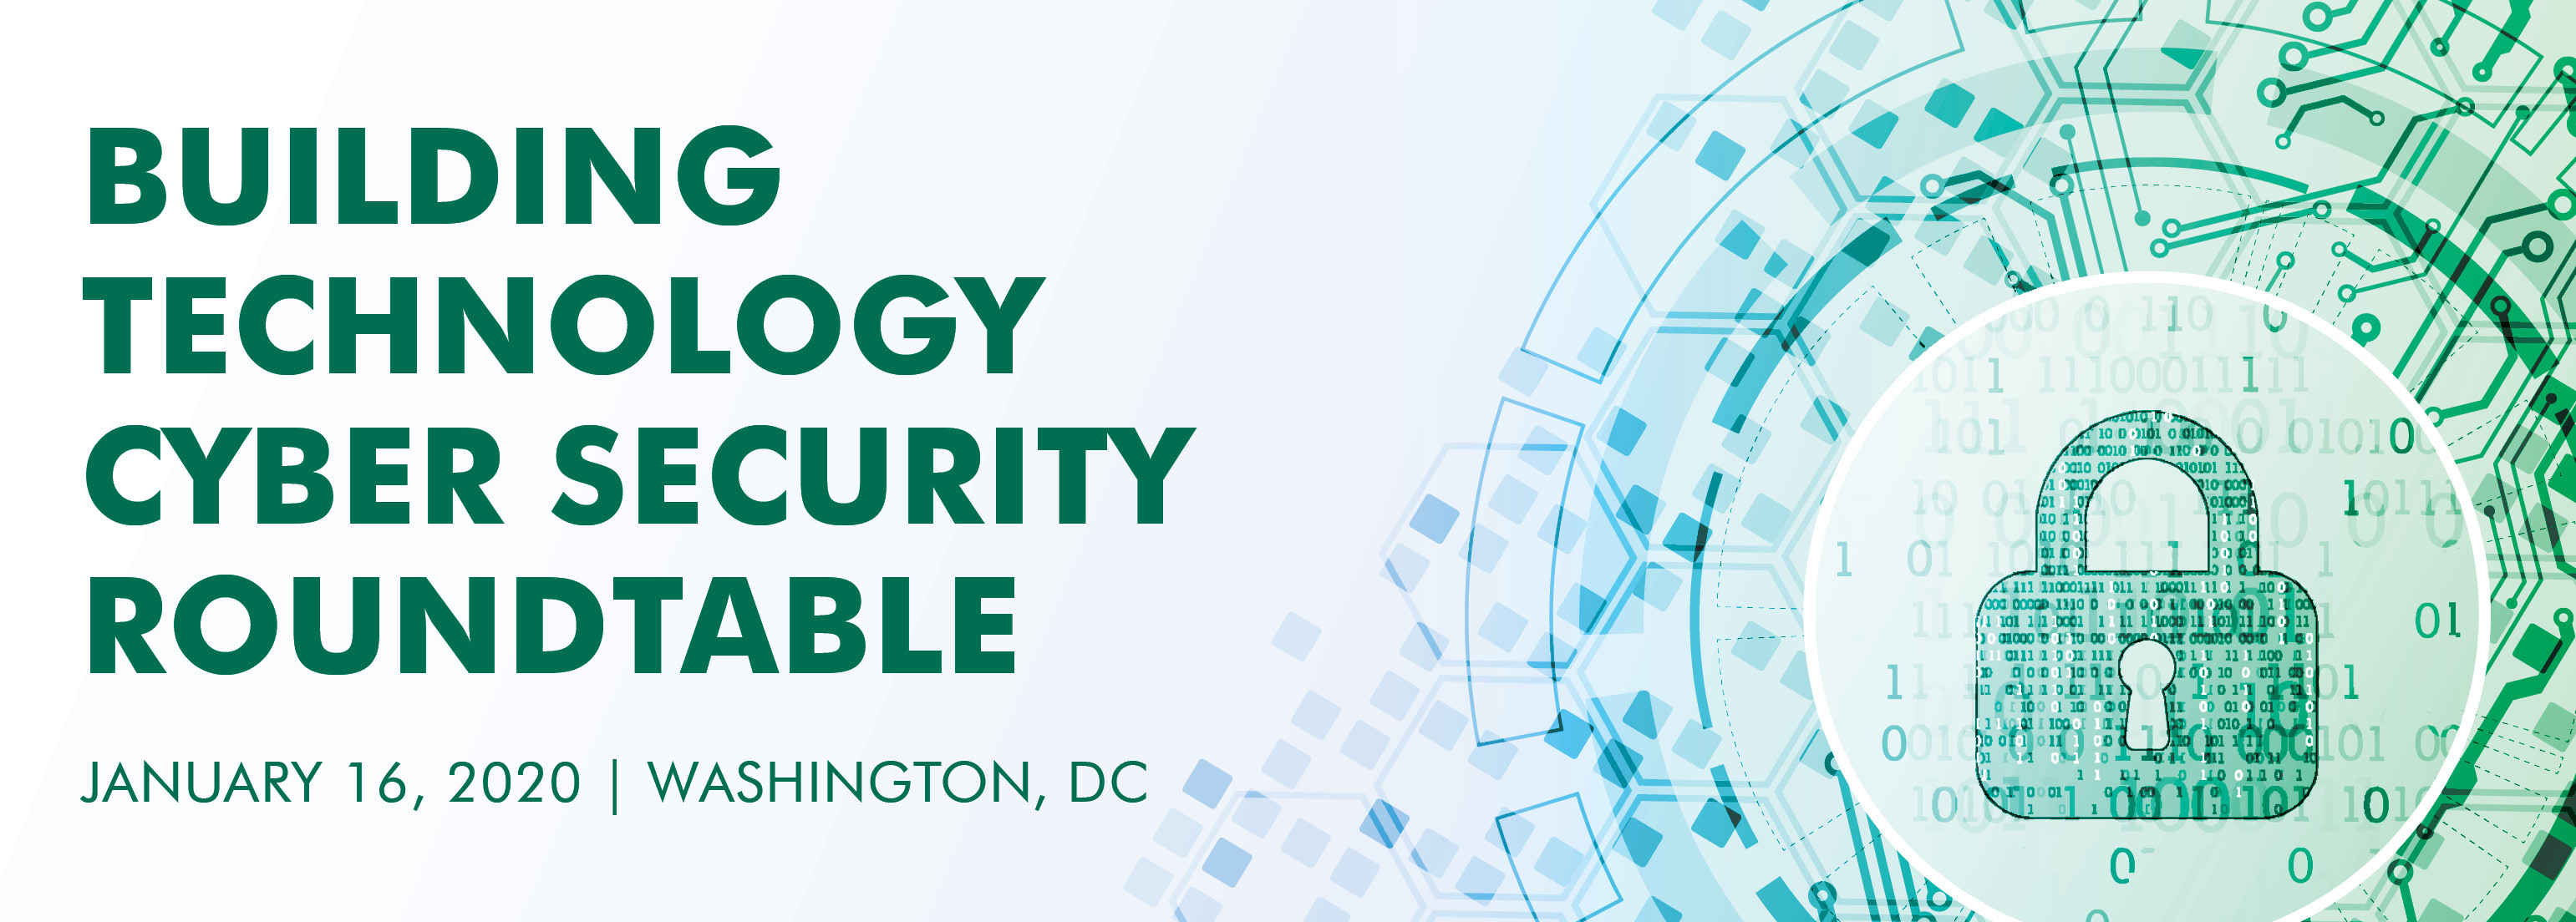 """CBRE Building Technology """"Call to Action"""" Cyber Roundtable"""